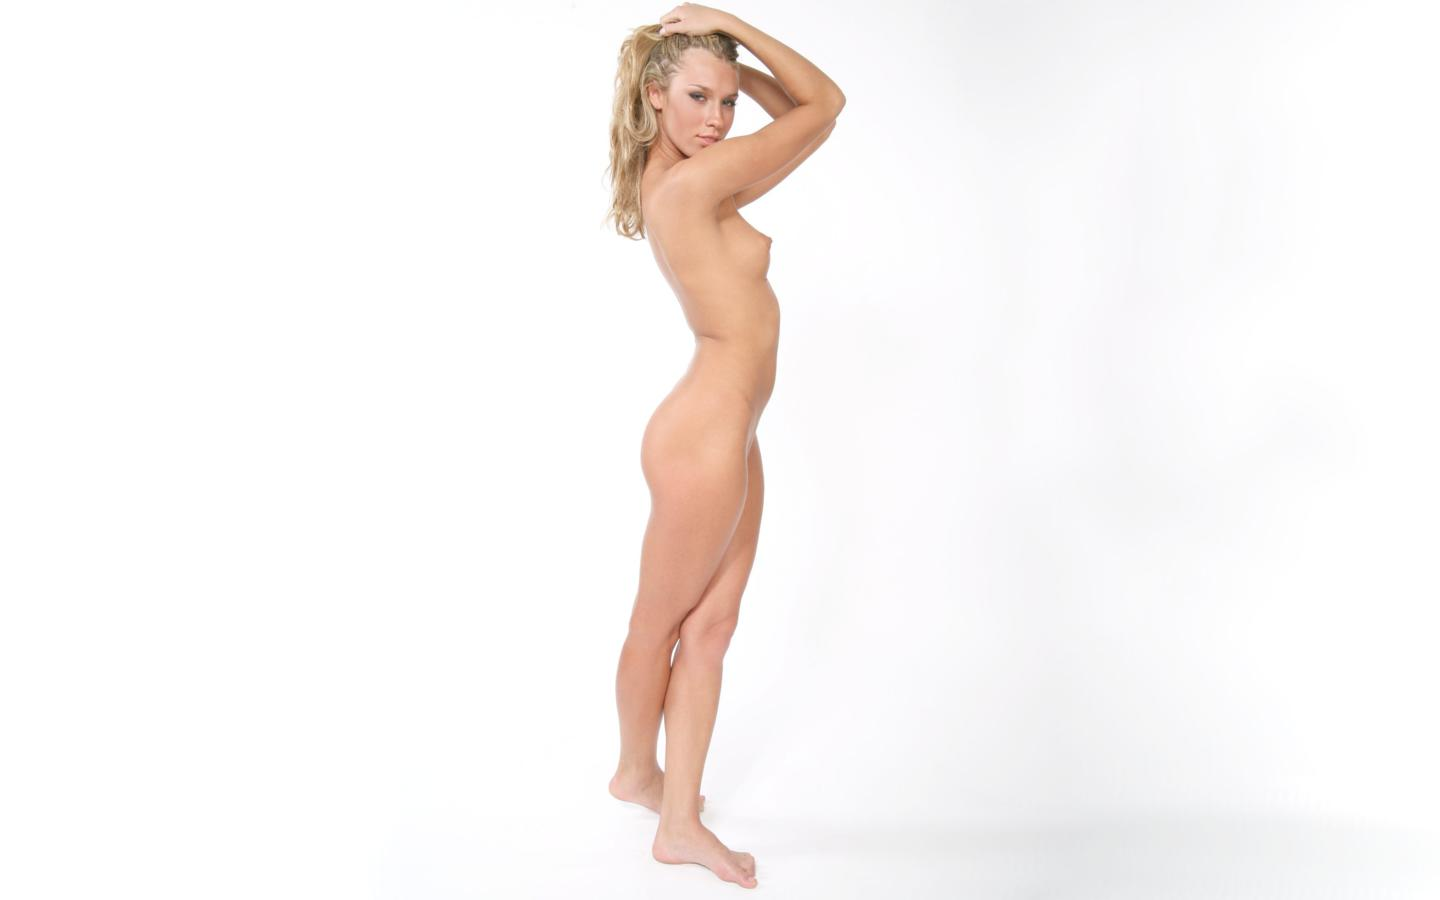 Anastasia Nude download photo 1440x900, blonde, hot, nude, naked, sexy